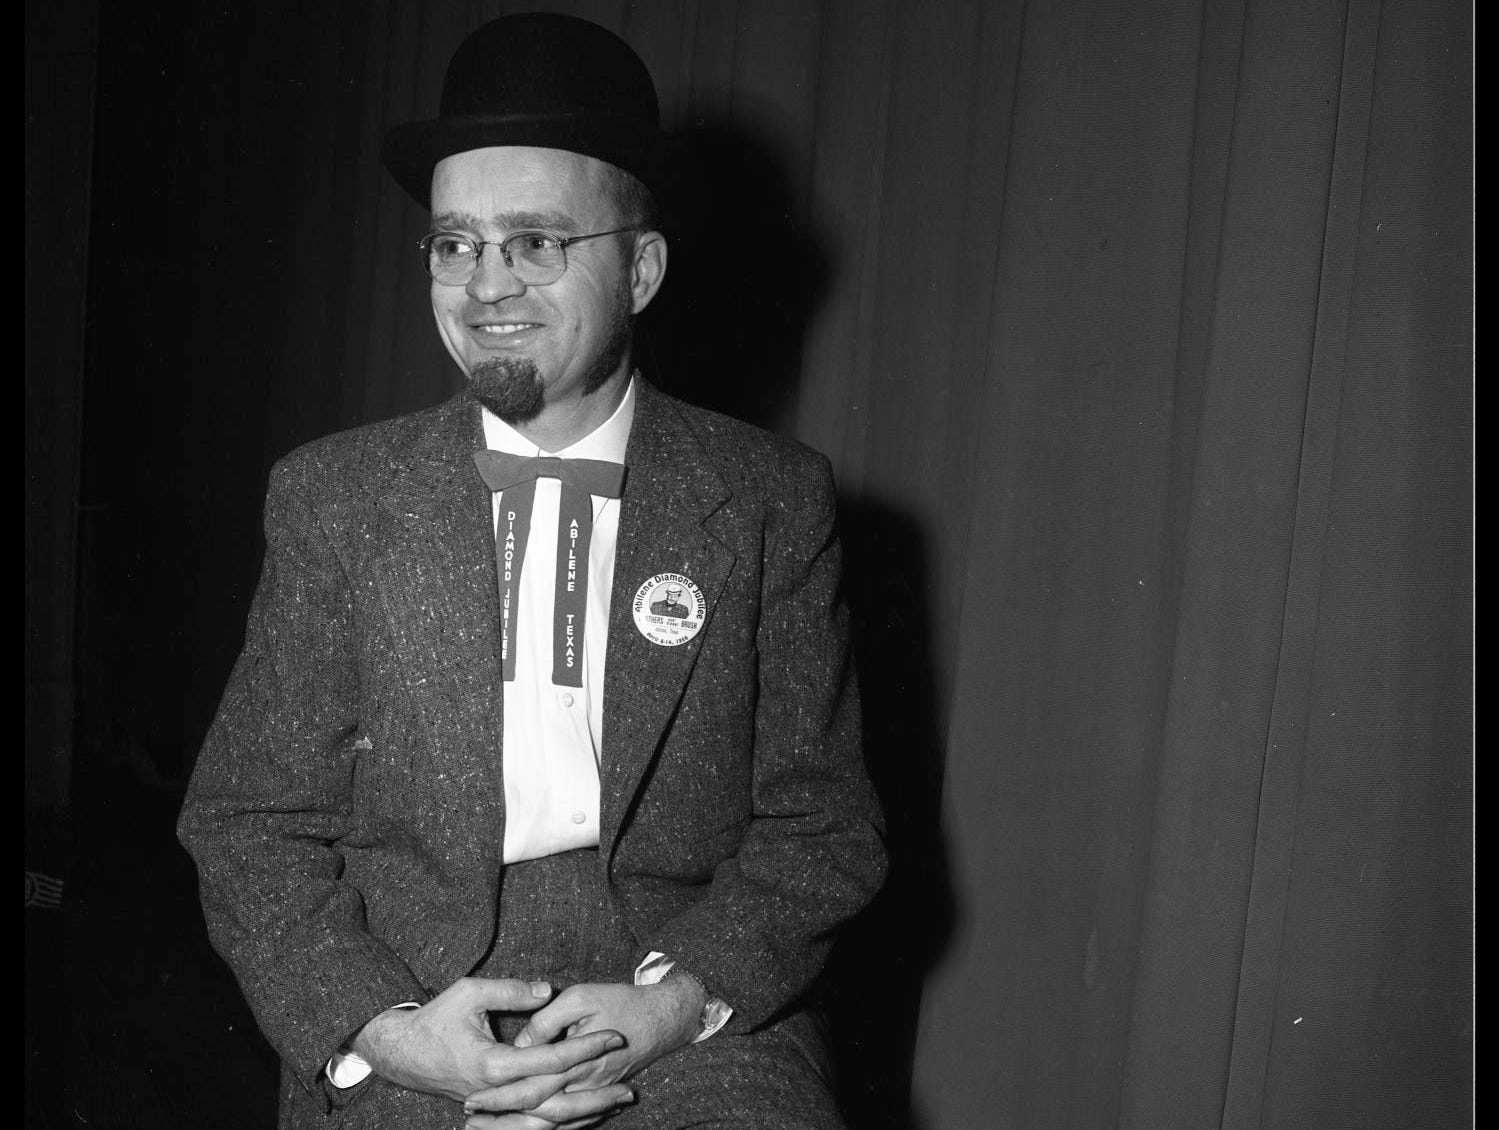 """An April 1956 portrait of Ed Wishcamper, former Abilene Reporter-News editor. He is wearing a suit and hat and a tie that says, """"Diamond Jubilee, Abilene Texas."""" A button on his suit says, """"Abilene Diamond Jubilee, Brothers of the Brush,"""